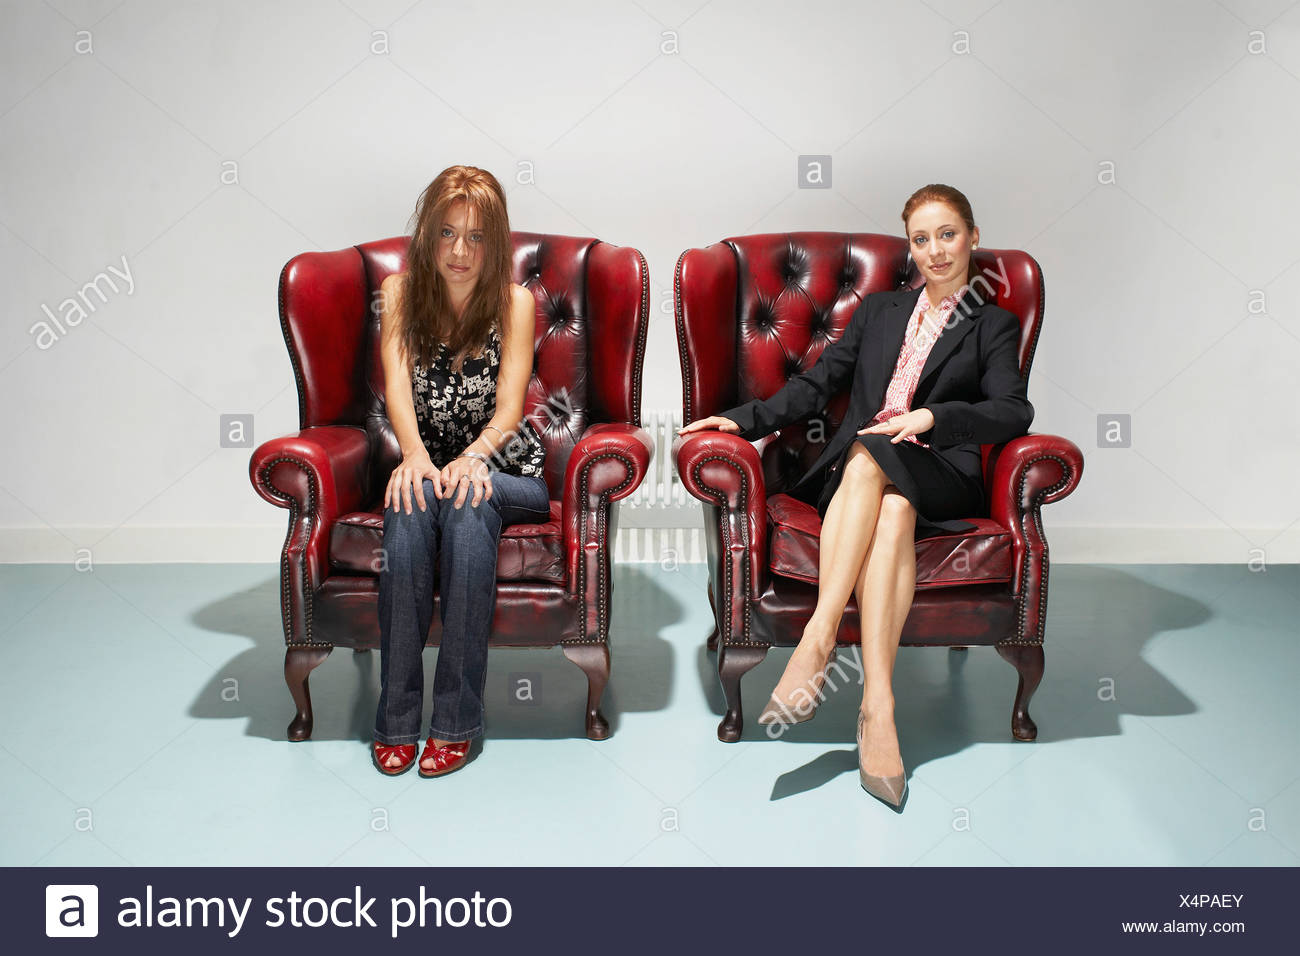 Businesswoman and disheveled woman in comfy leather chairs Stock Photo